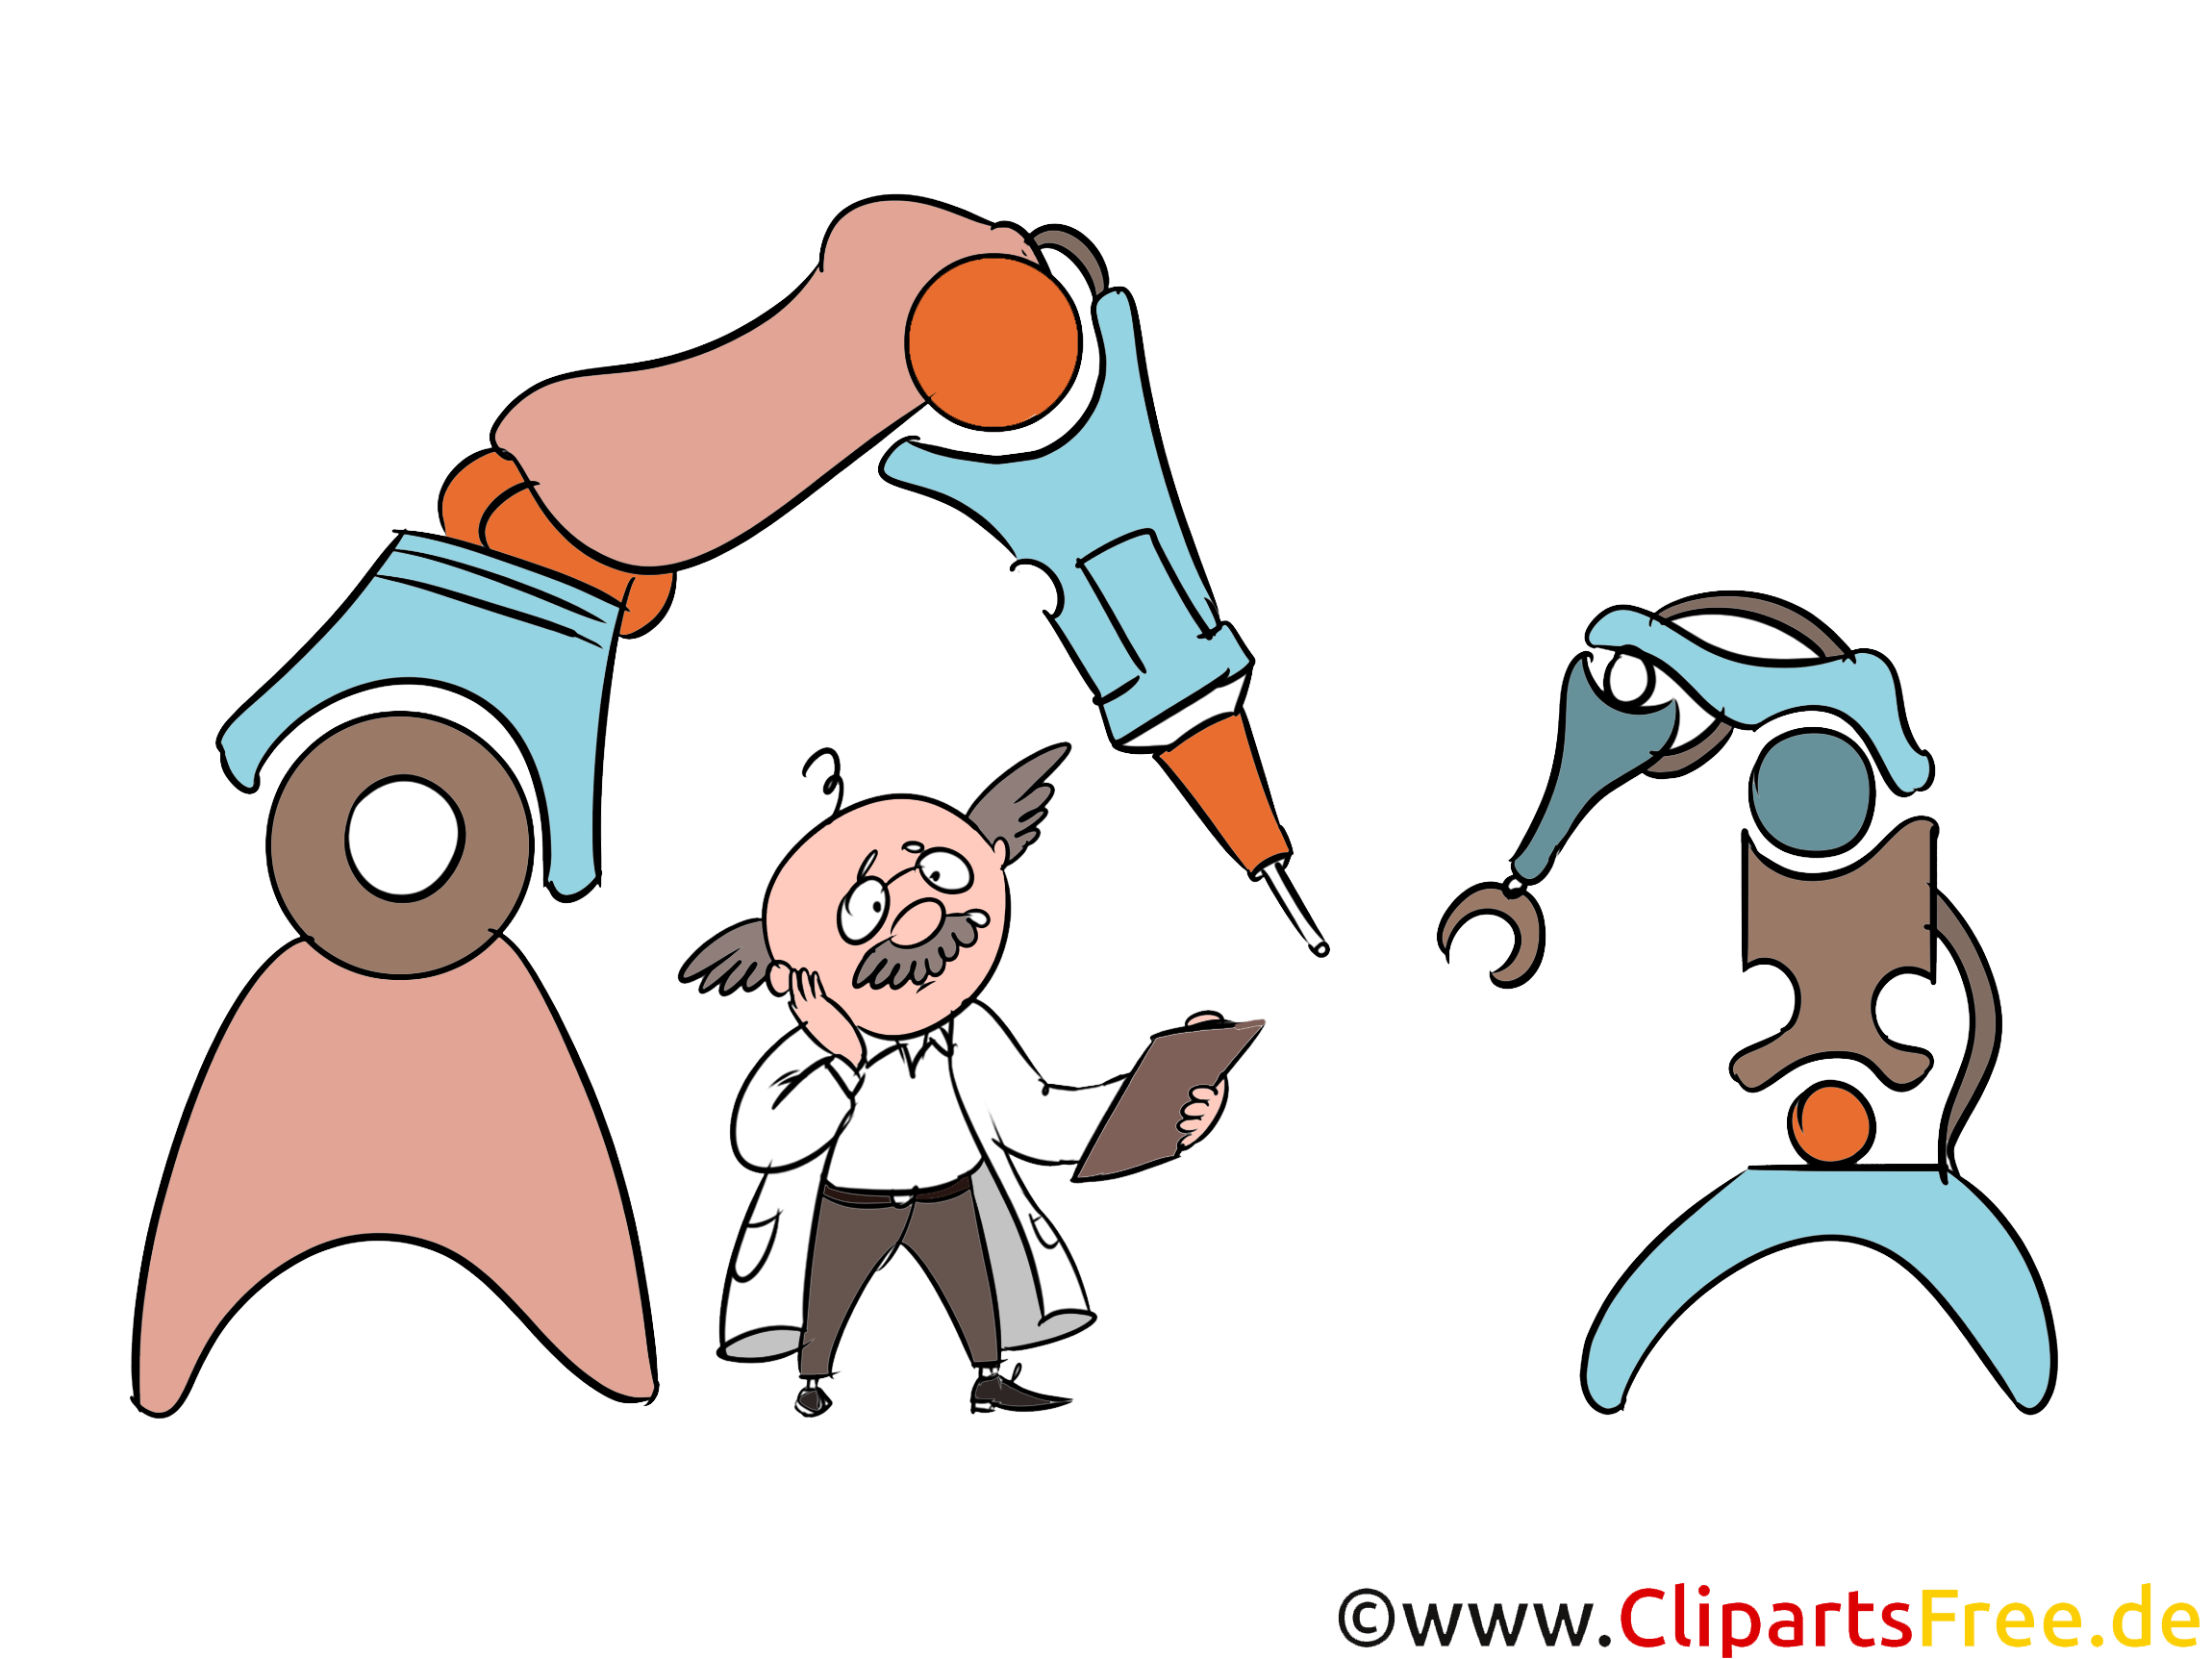 Moderne Robotertechnik, Produktion, Automatisierung Clipart, Grafik, Illustration